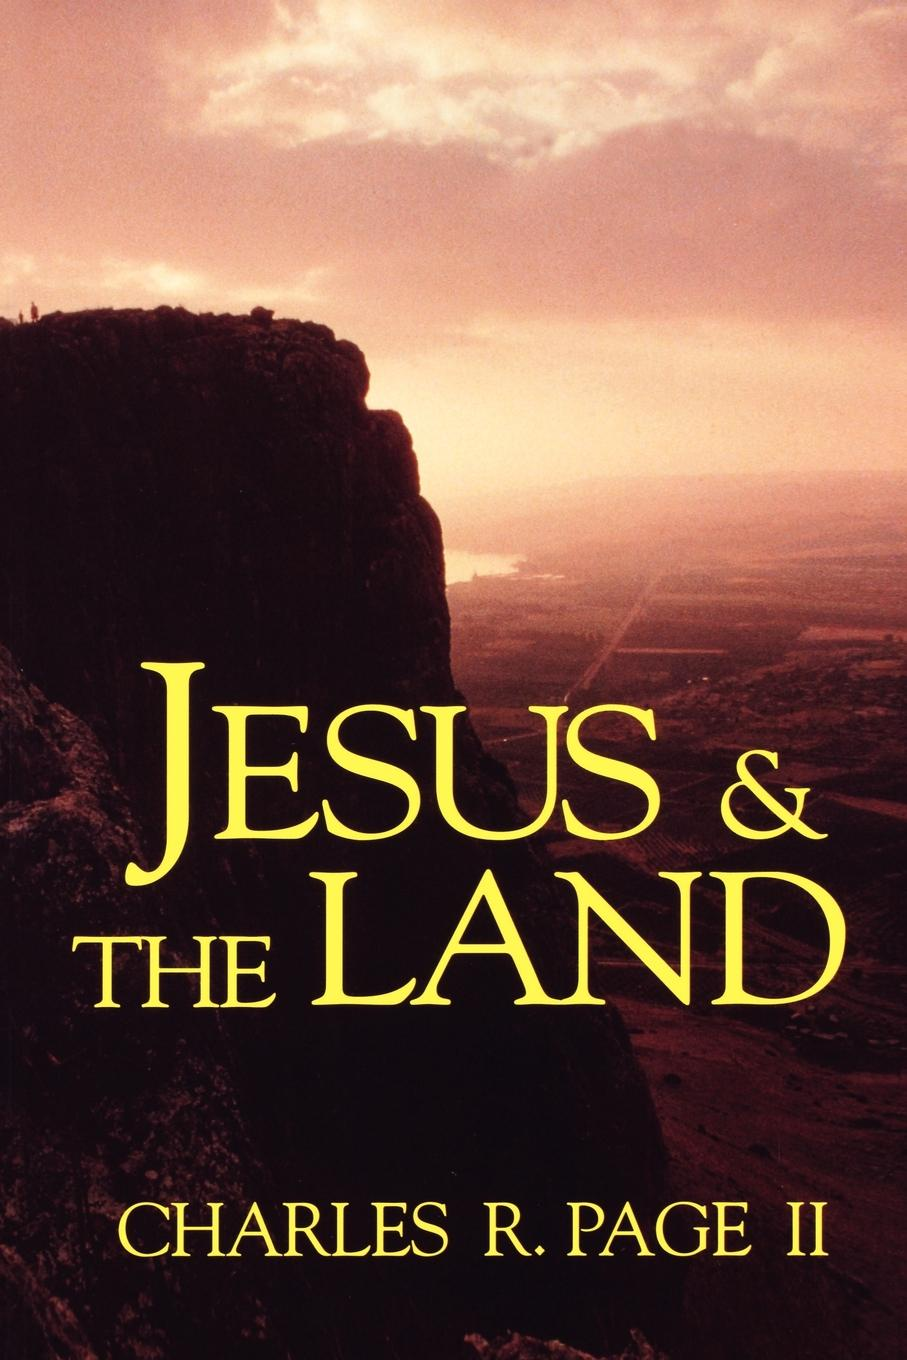 Charles R. Page, Charles R. Page II Jesus & the Land кпб mp 34 page 4 page 9 page 6